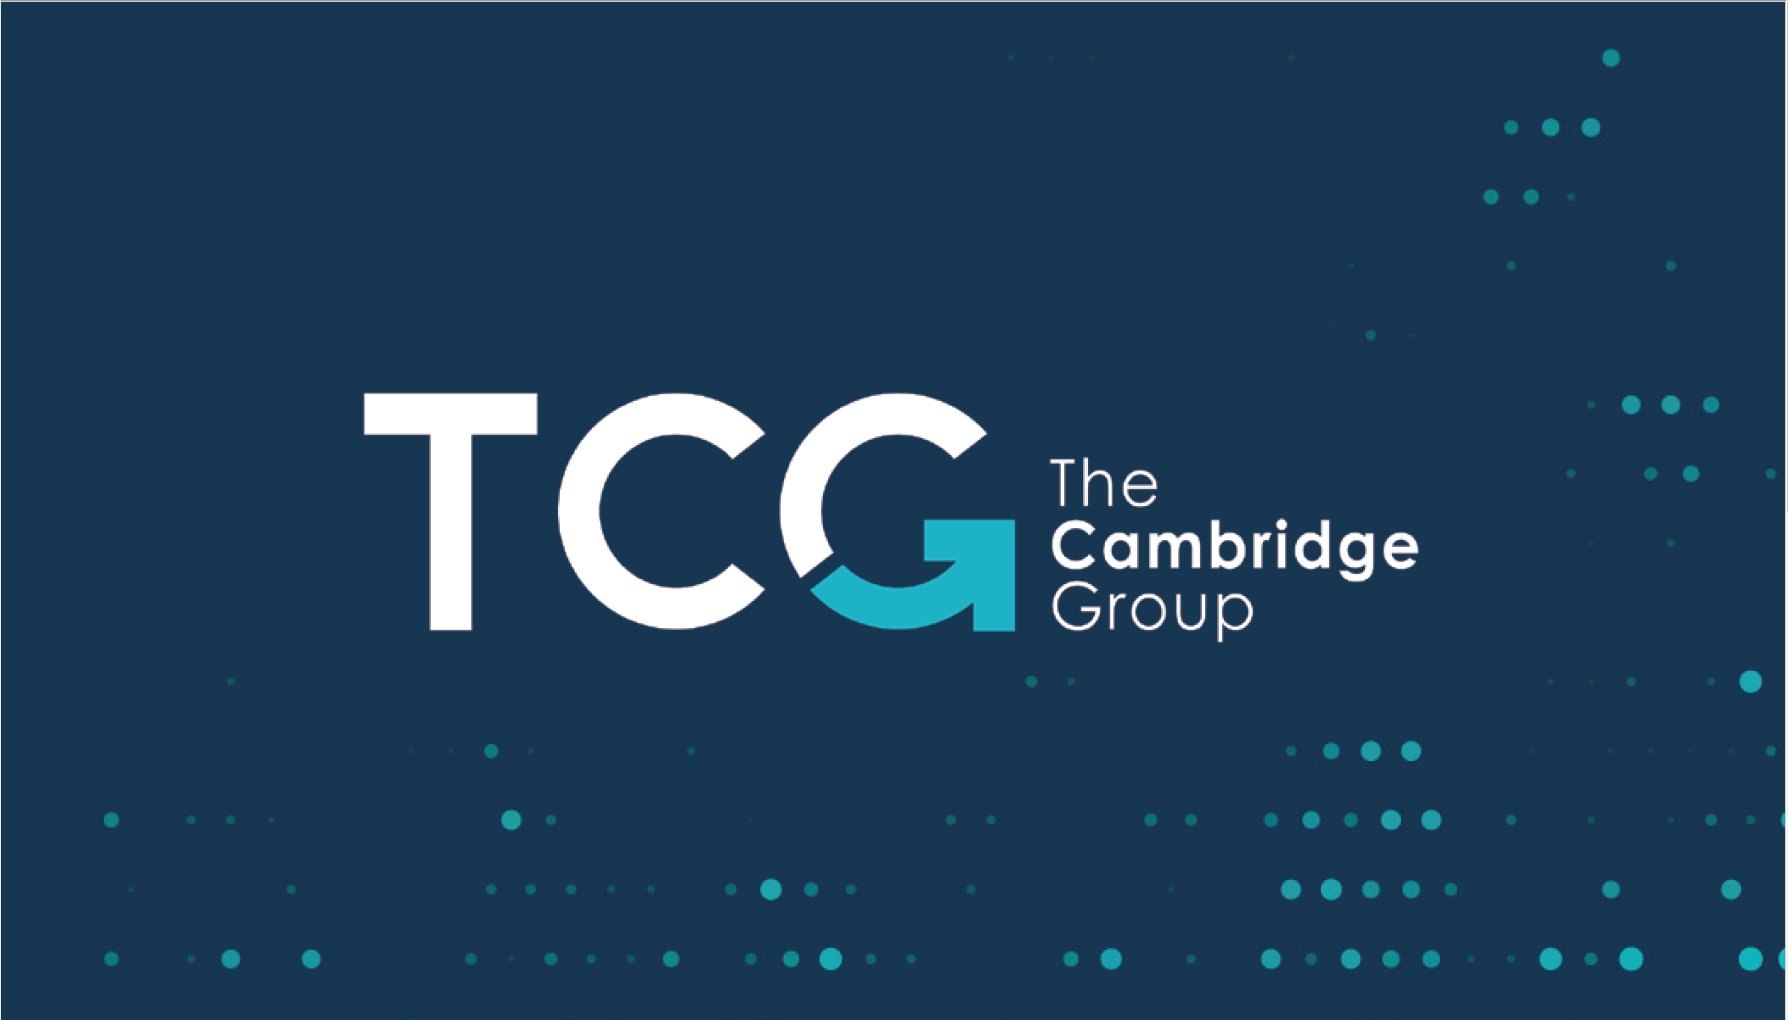 The Cambridge Group unveils new visual identity and logo thumbnail